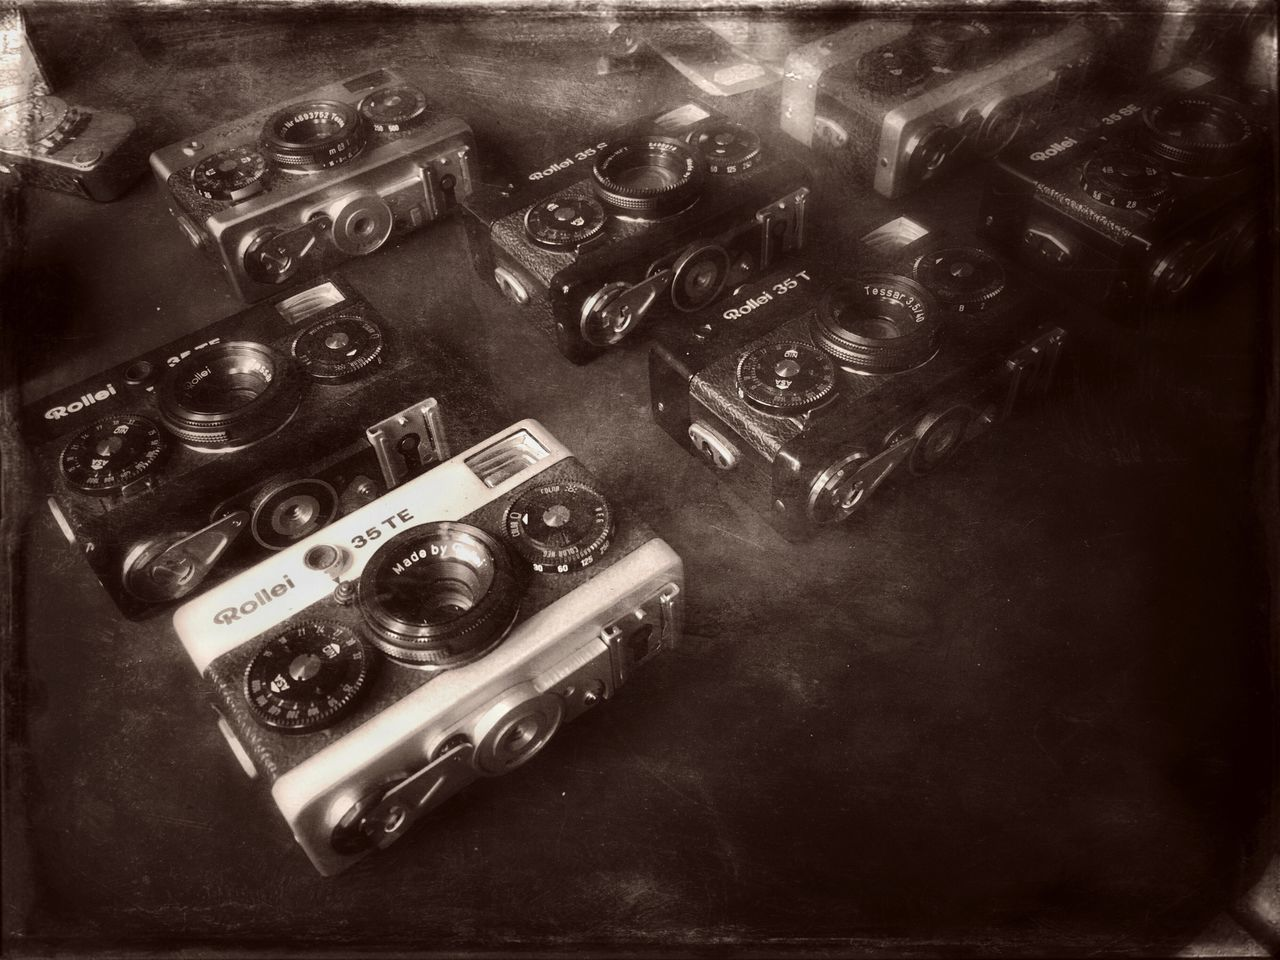 Camera Old Camera Photos Rollei35 Retro Styled No People Antique Indoors  High Angle View Technology Large Group Of Objects Close-up Old-fashioned Analogue Photography Day